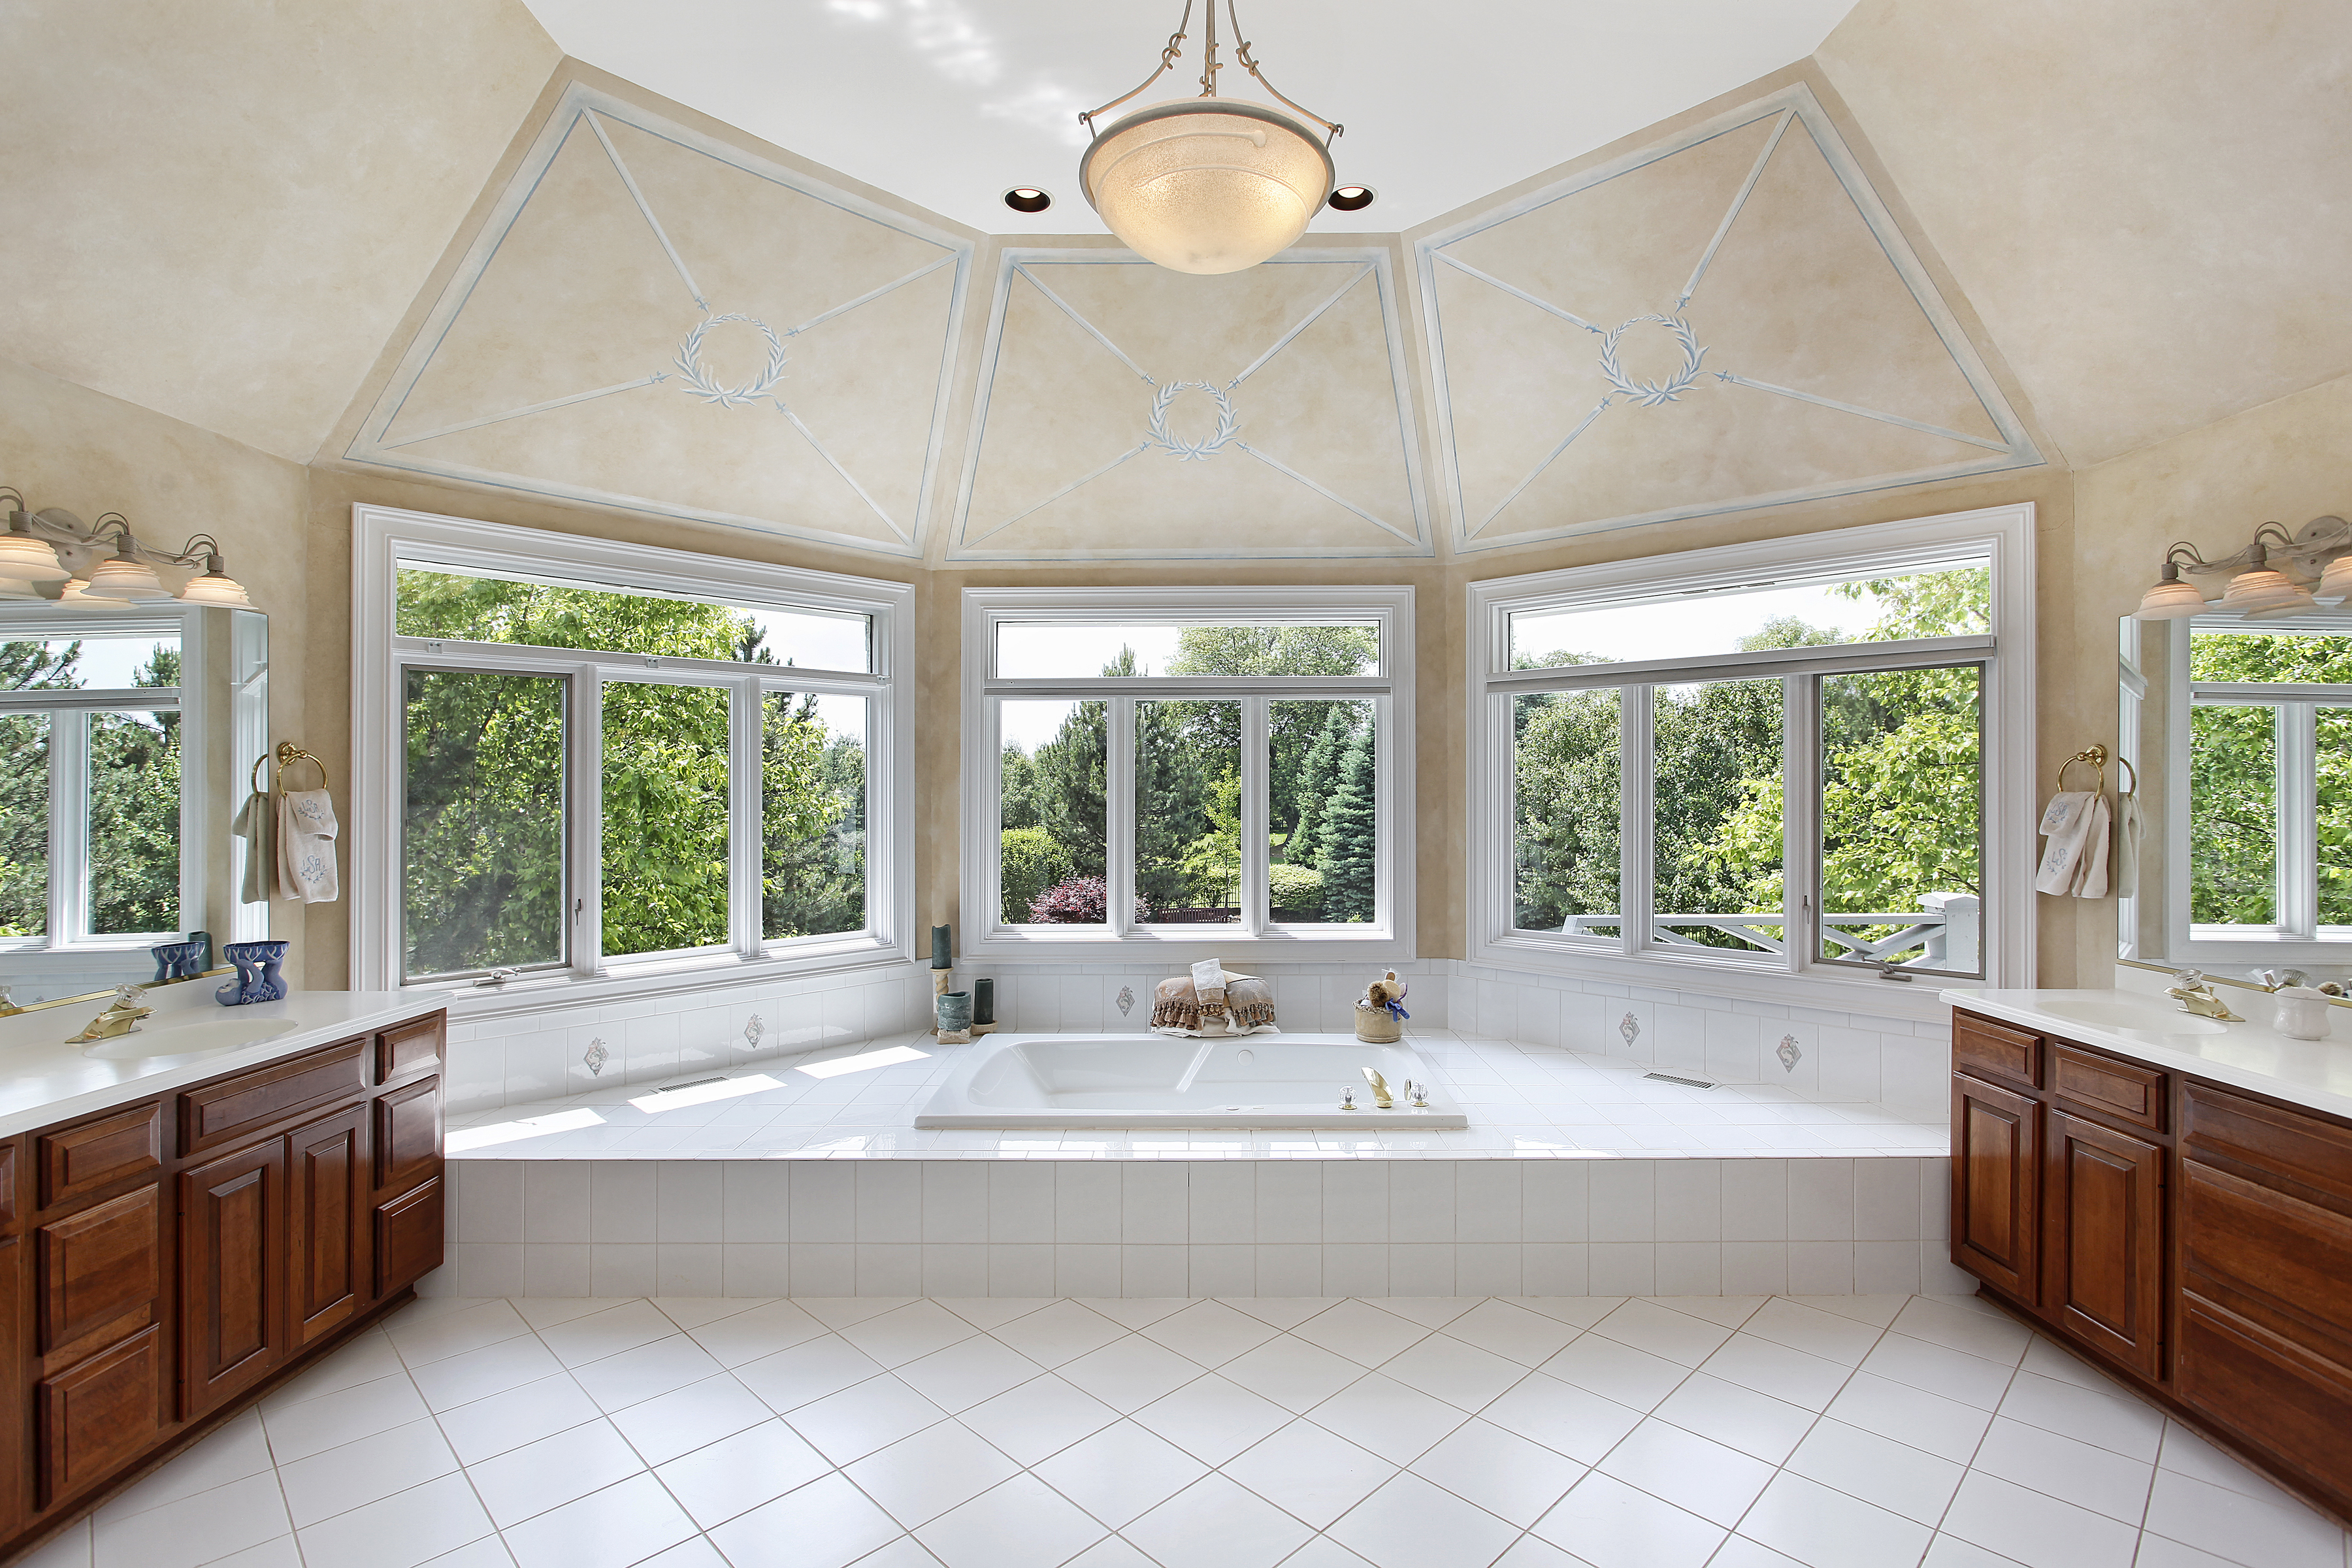 Master bath in luxury home with windowed tub area